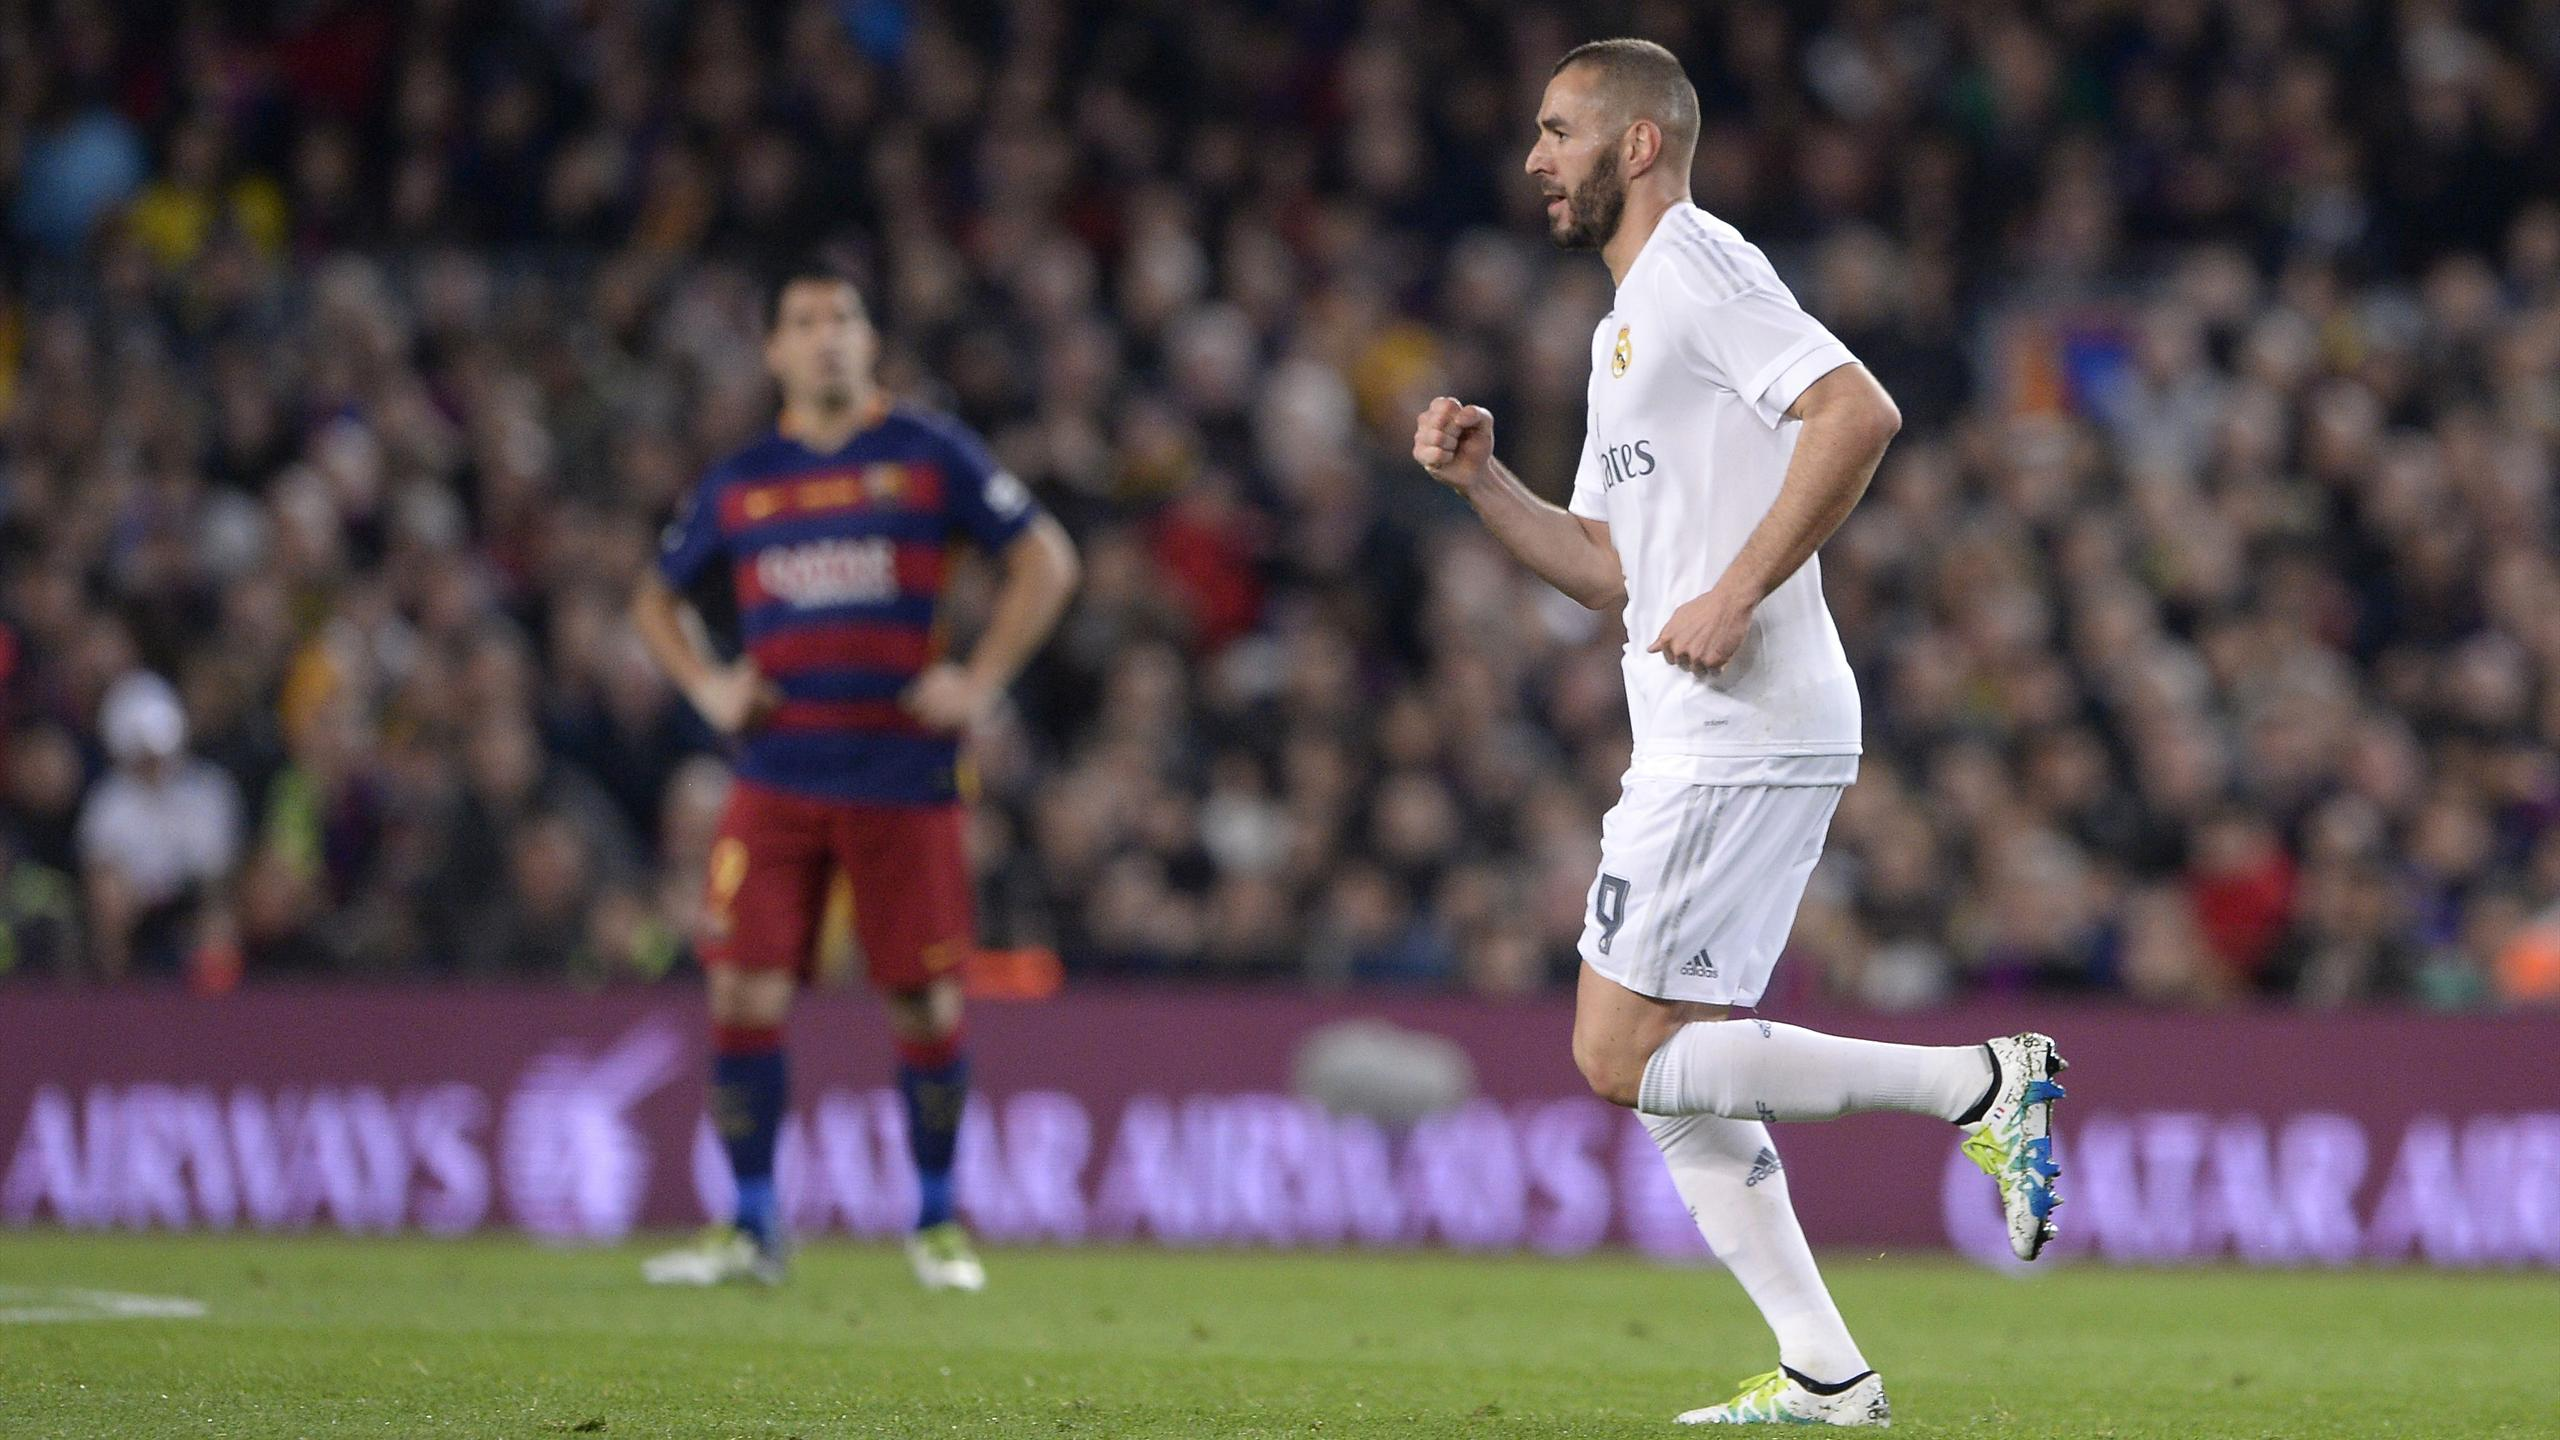 Benzema (Real Madrid) buteur face au Barça